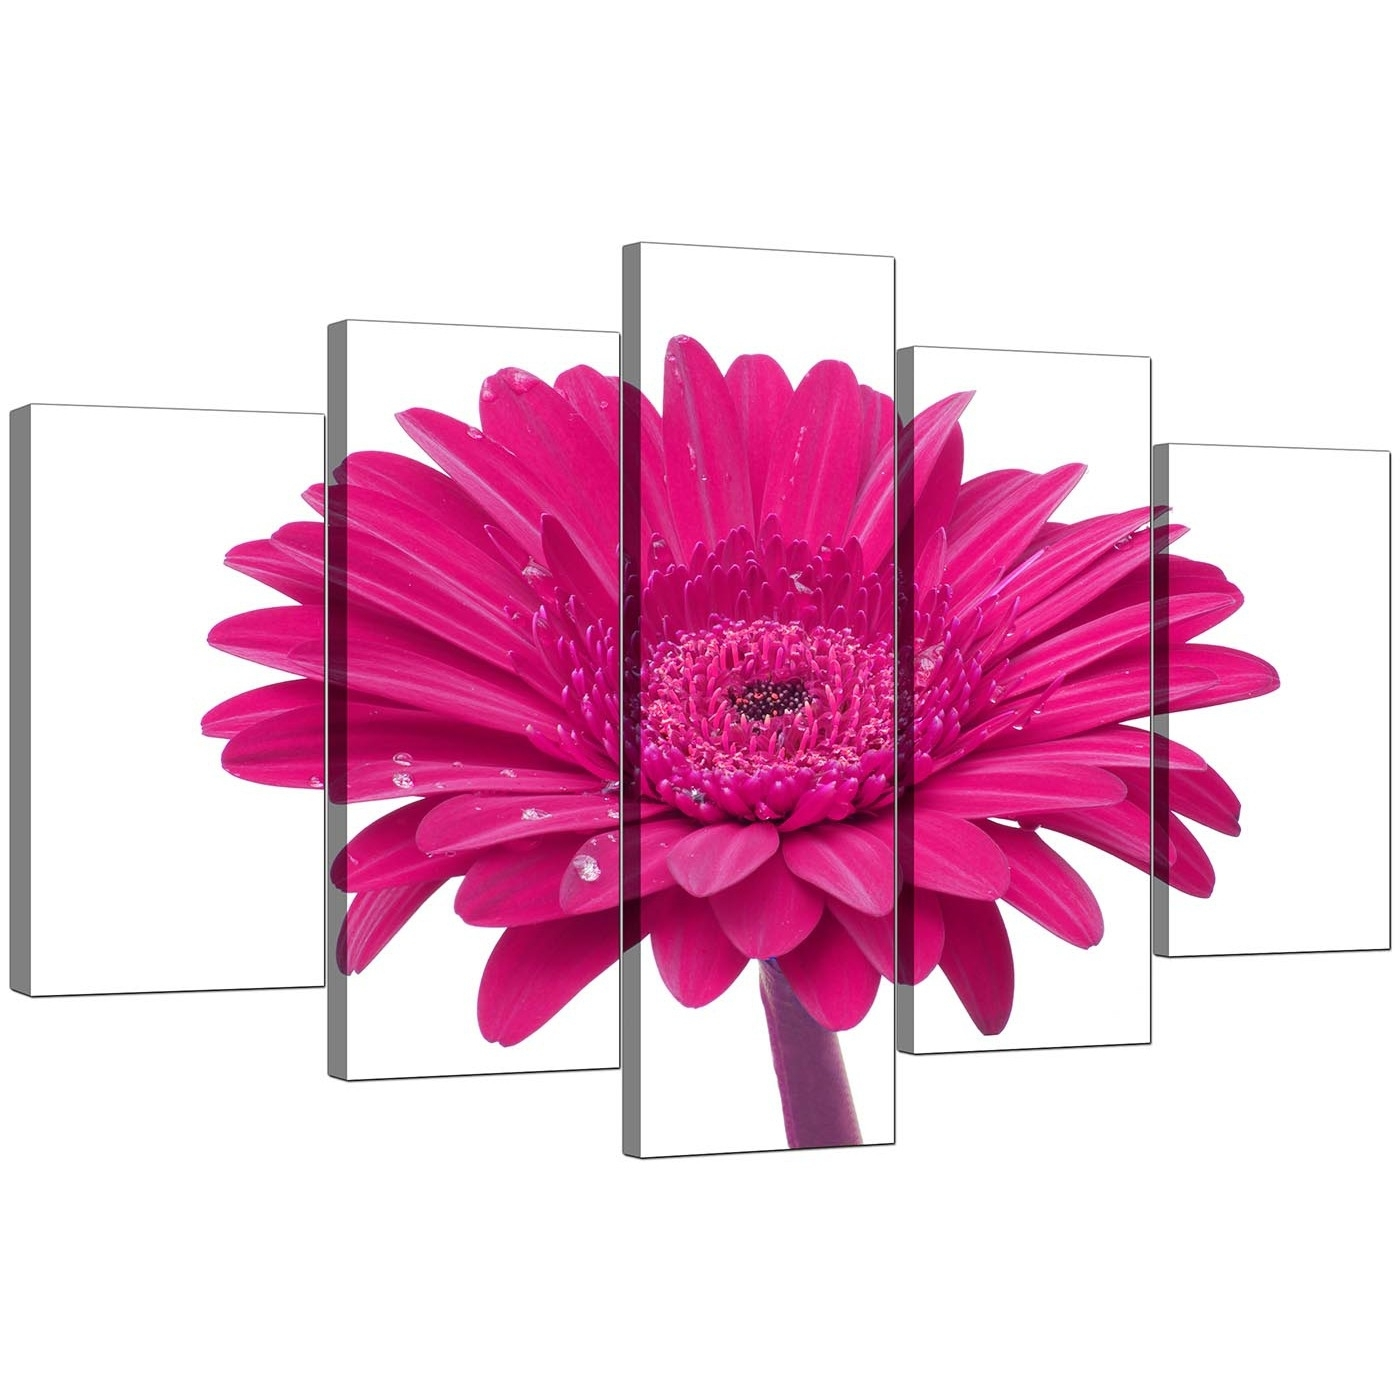 Extra Large Flower Canvas Wall Art 5 Piece In Pink Regarding Best And Newest Pink Canvas Wall Art (View 11 of 15)